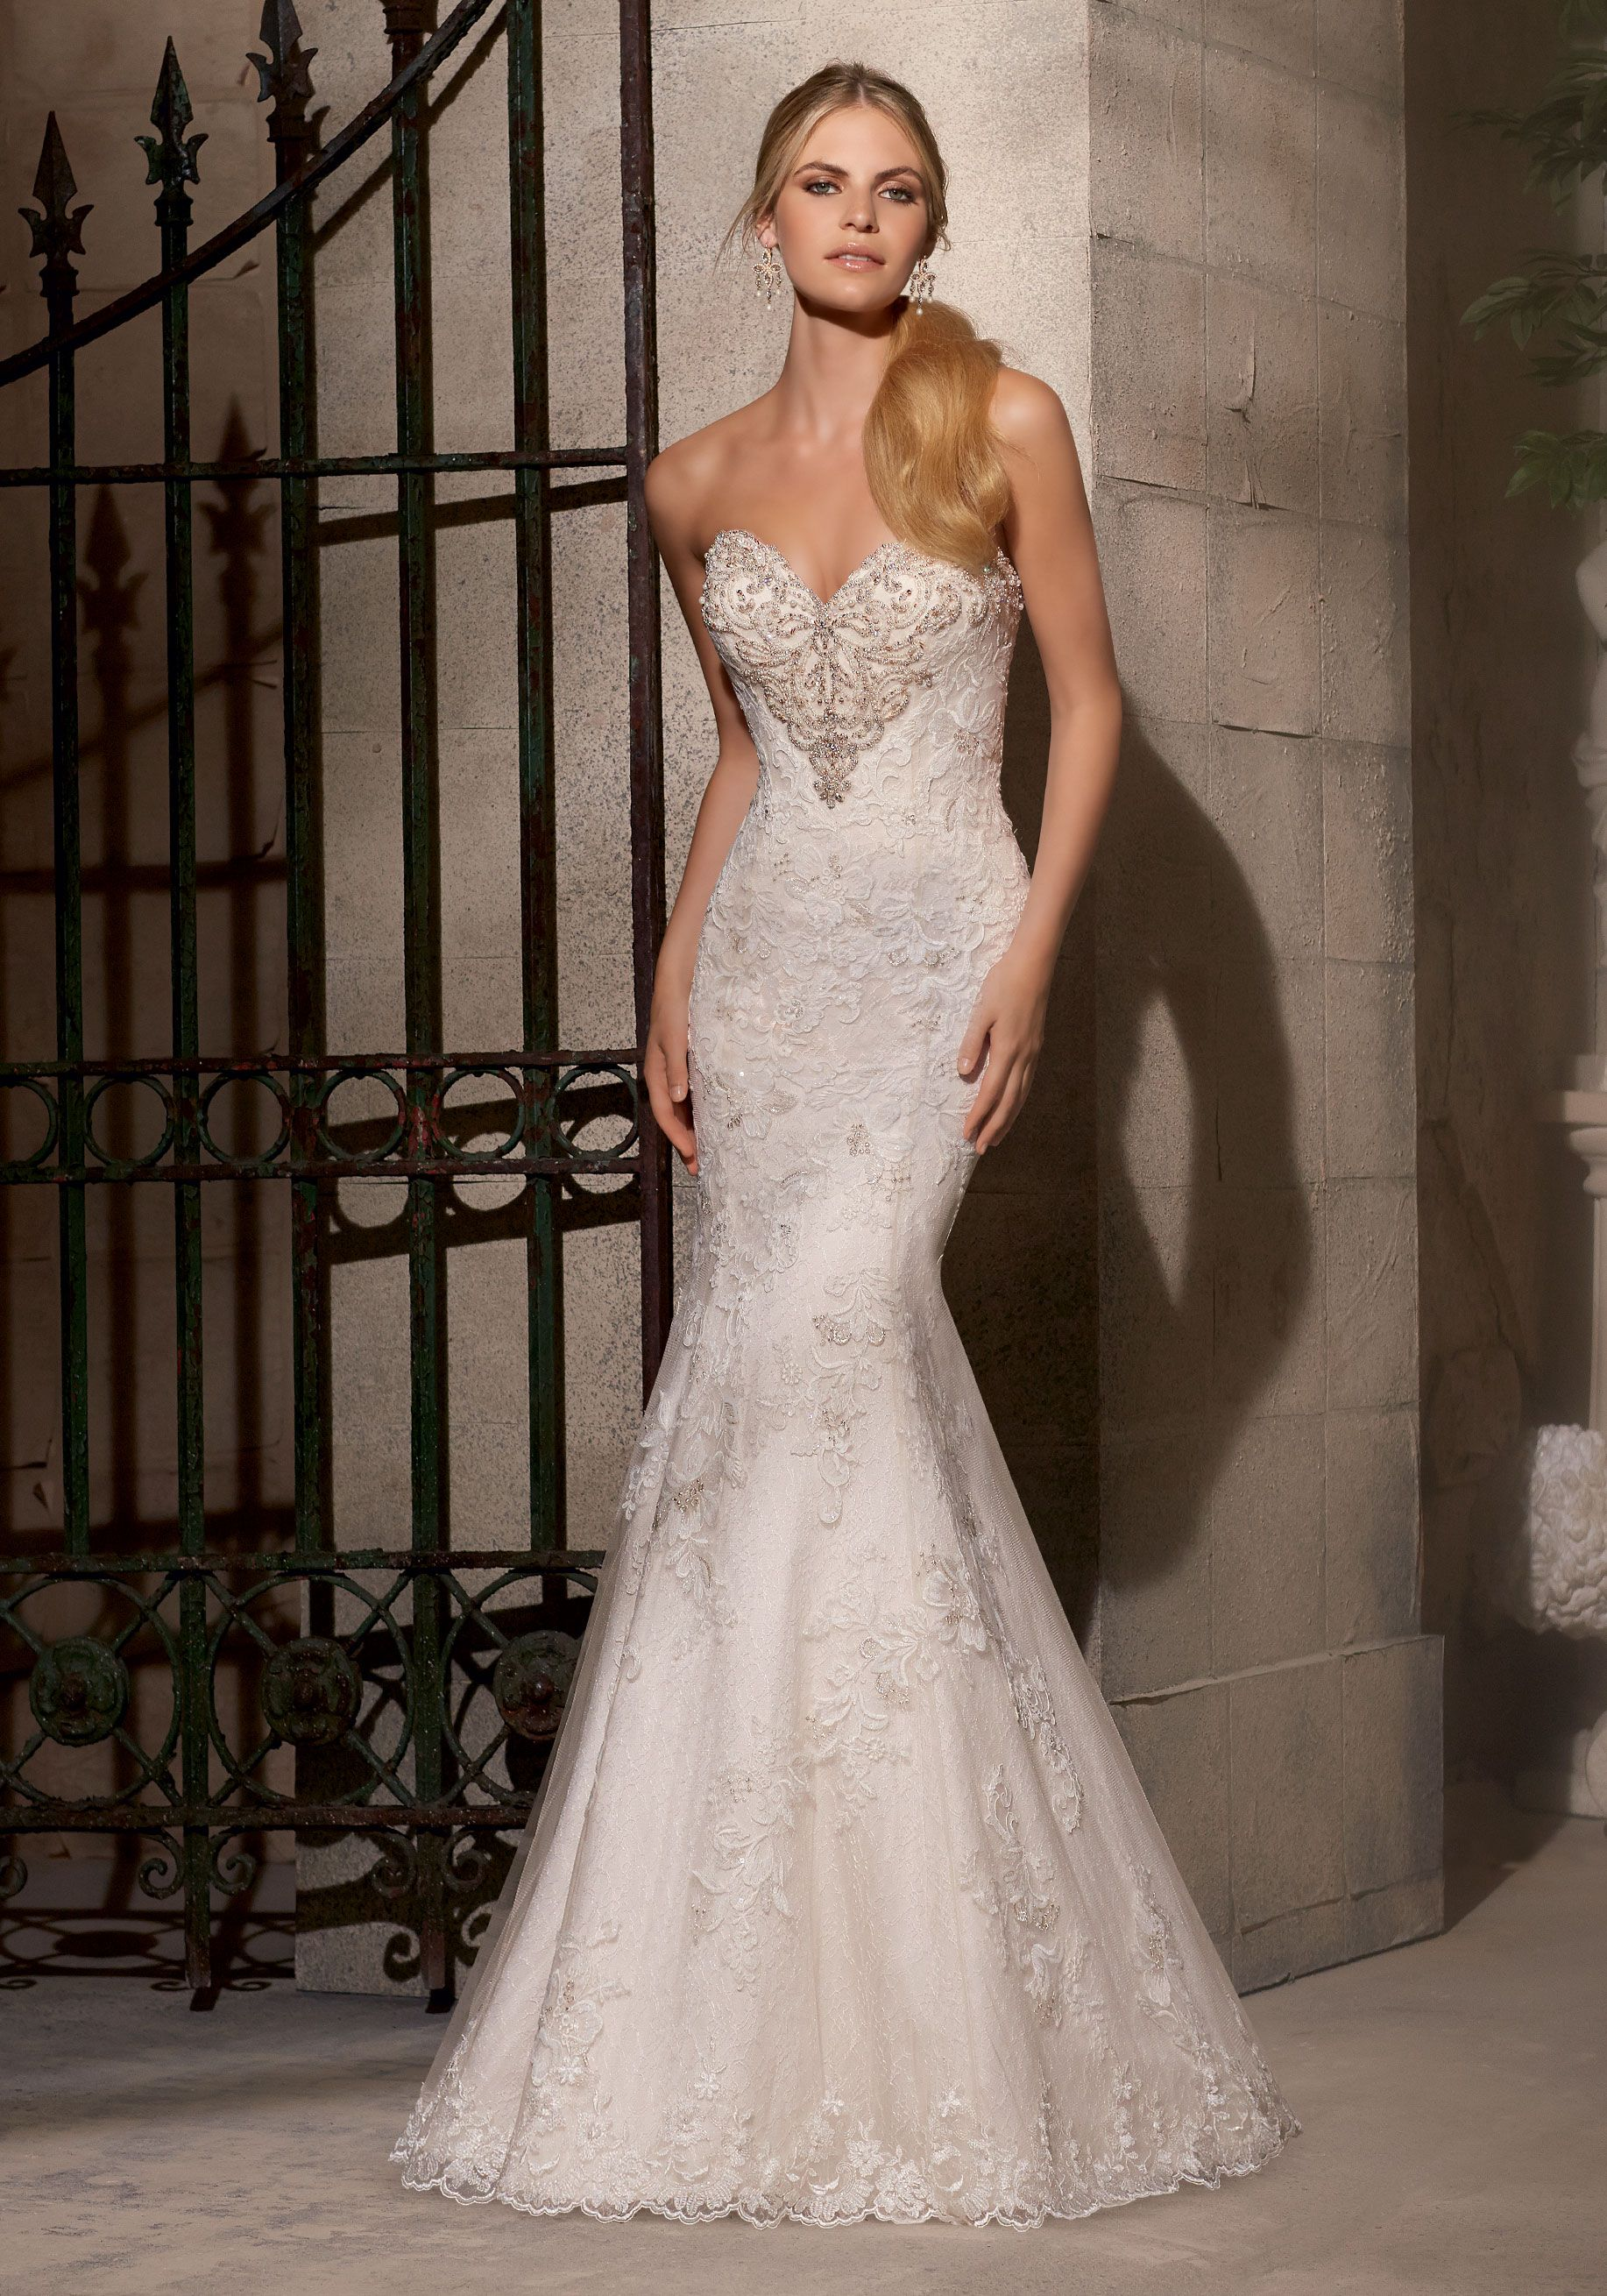 Layers of lace create a delicate romantic bridal dress with